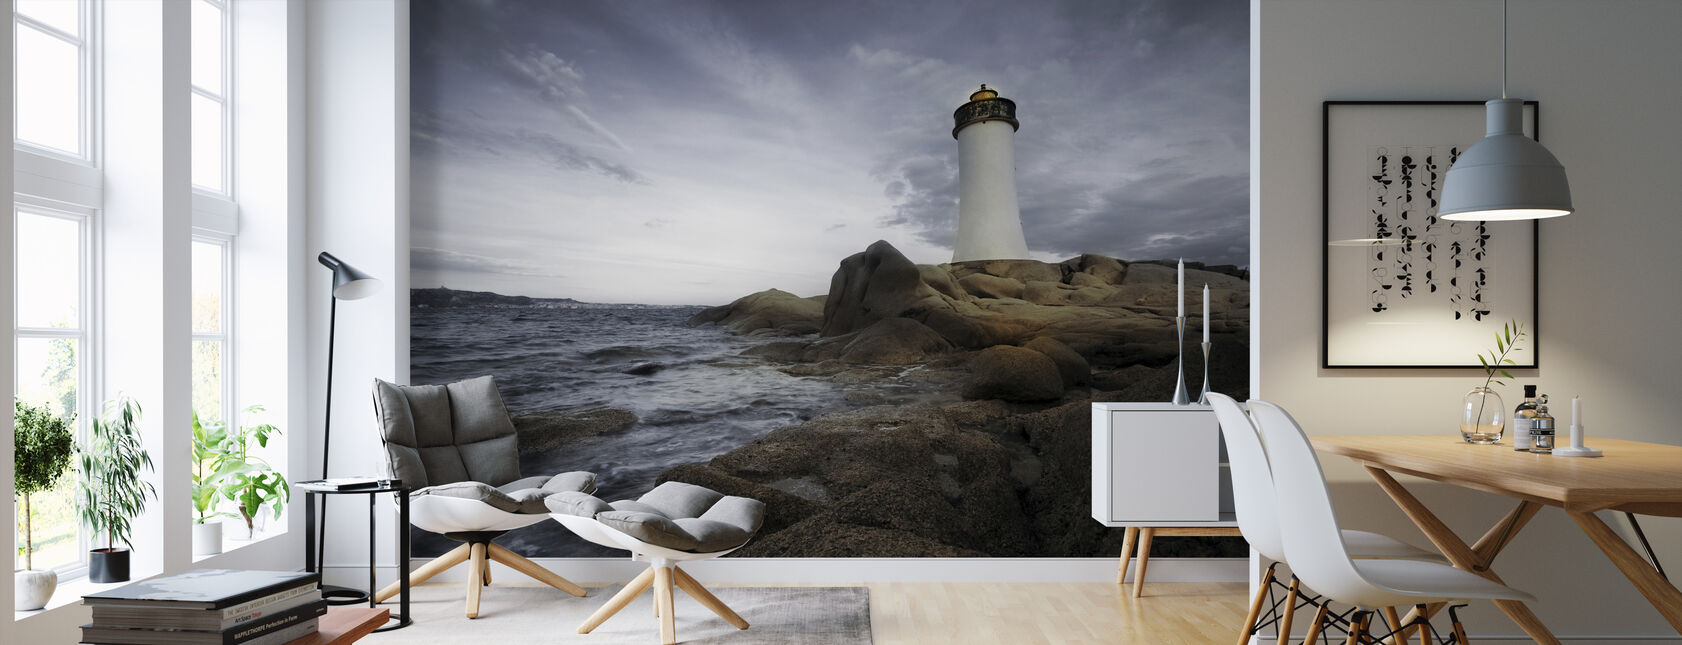 Sardinia Lighthouse - Wallpaper - Living Room